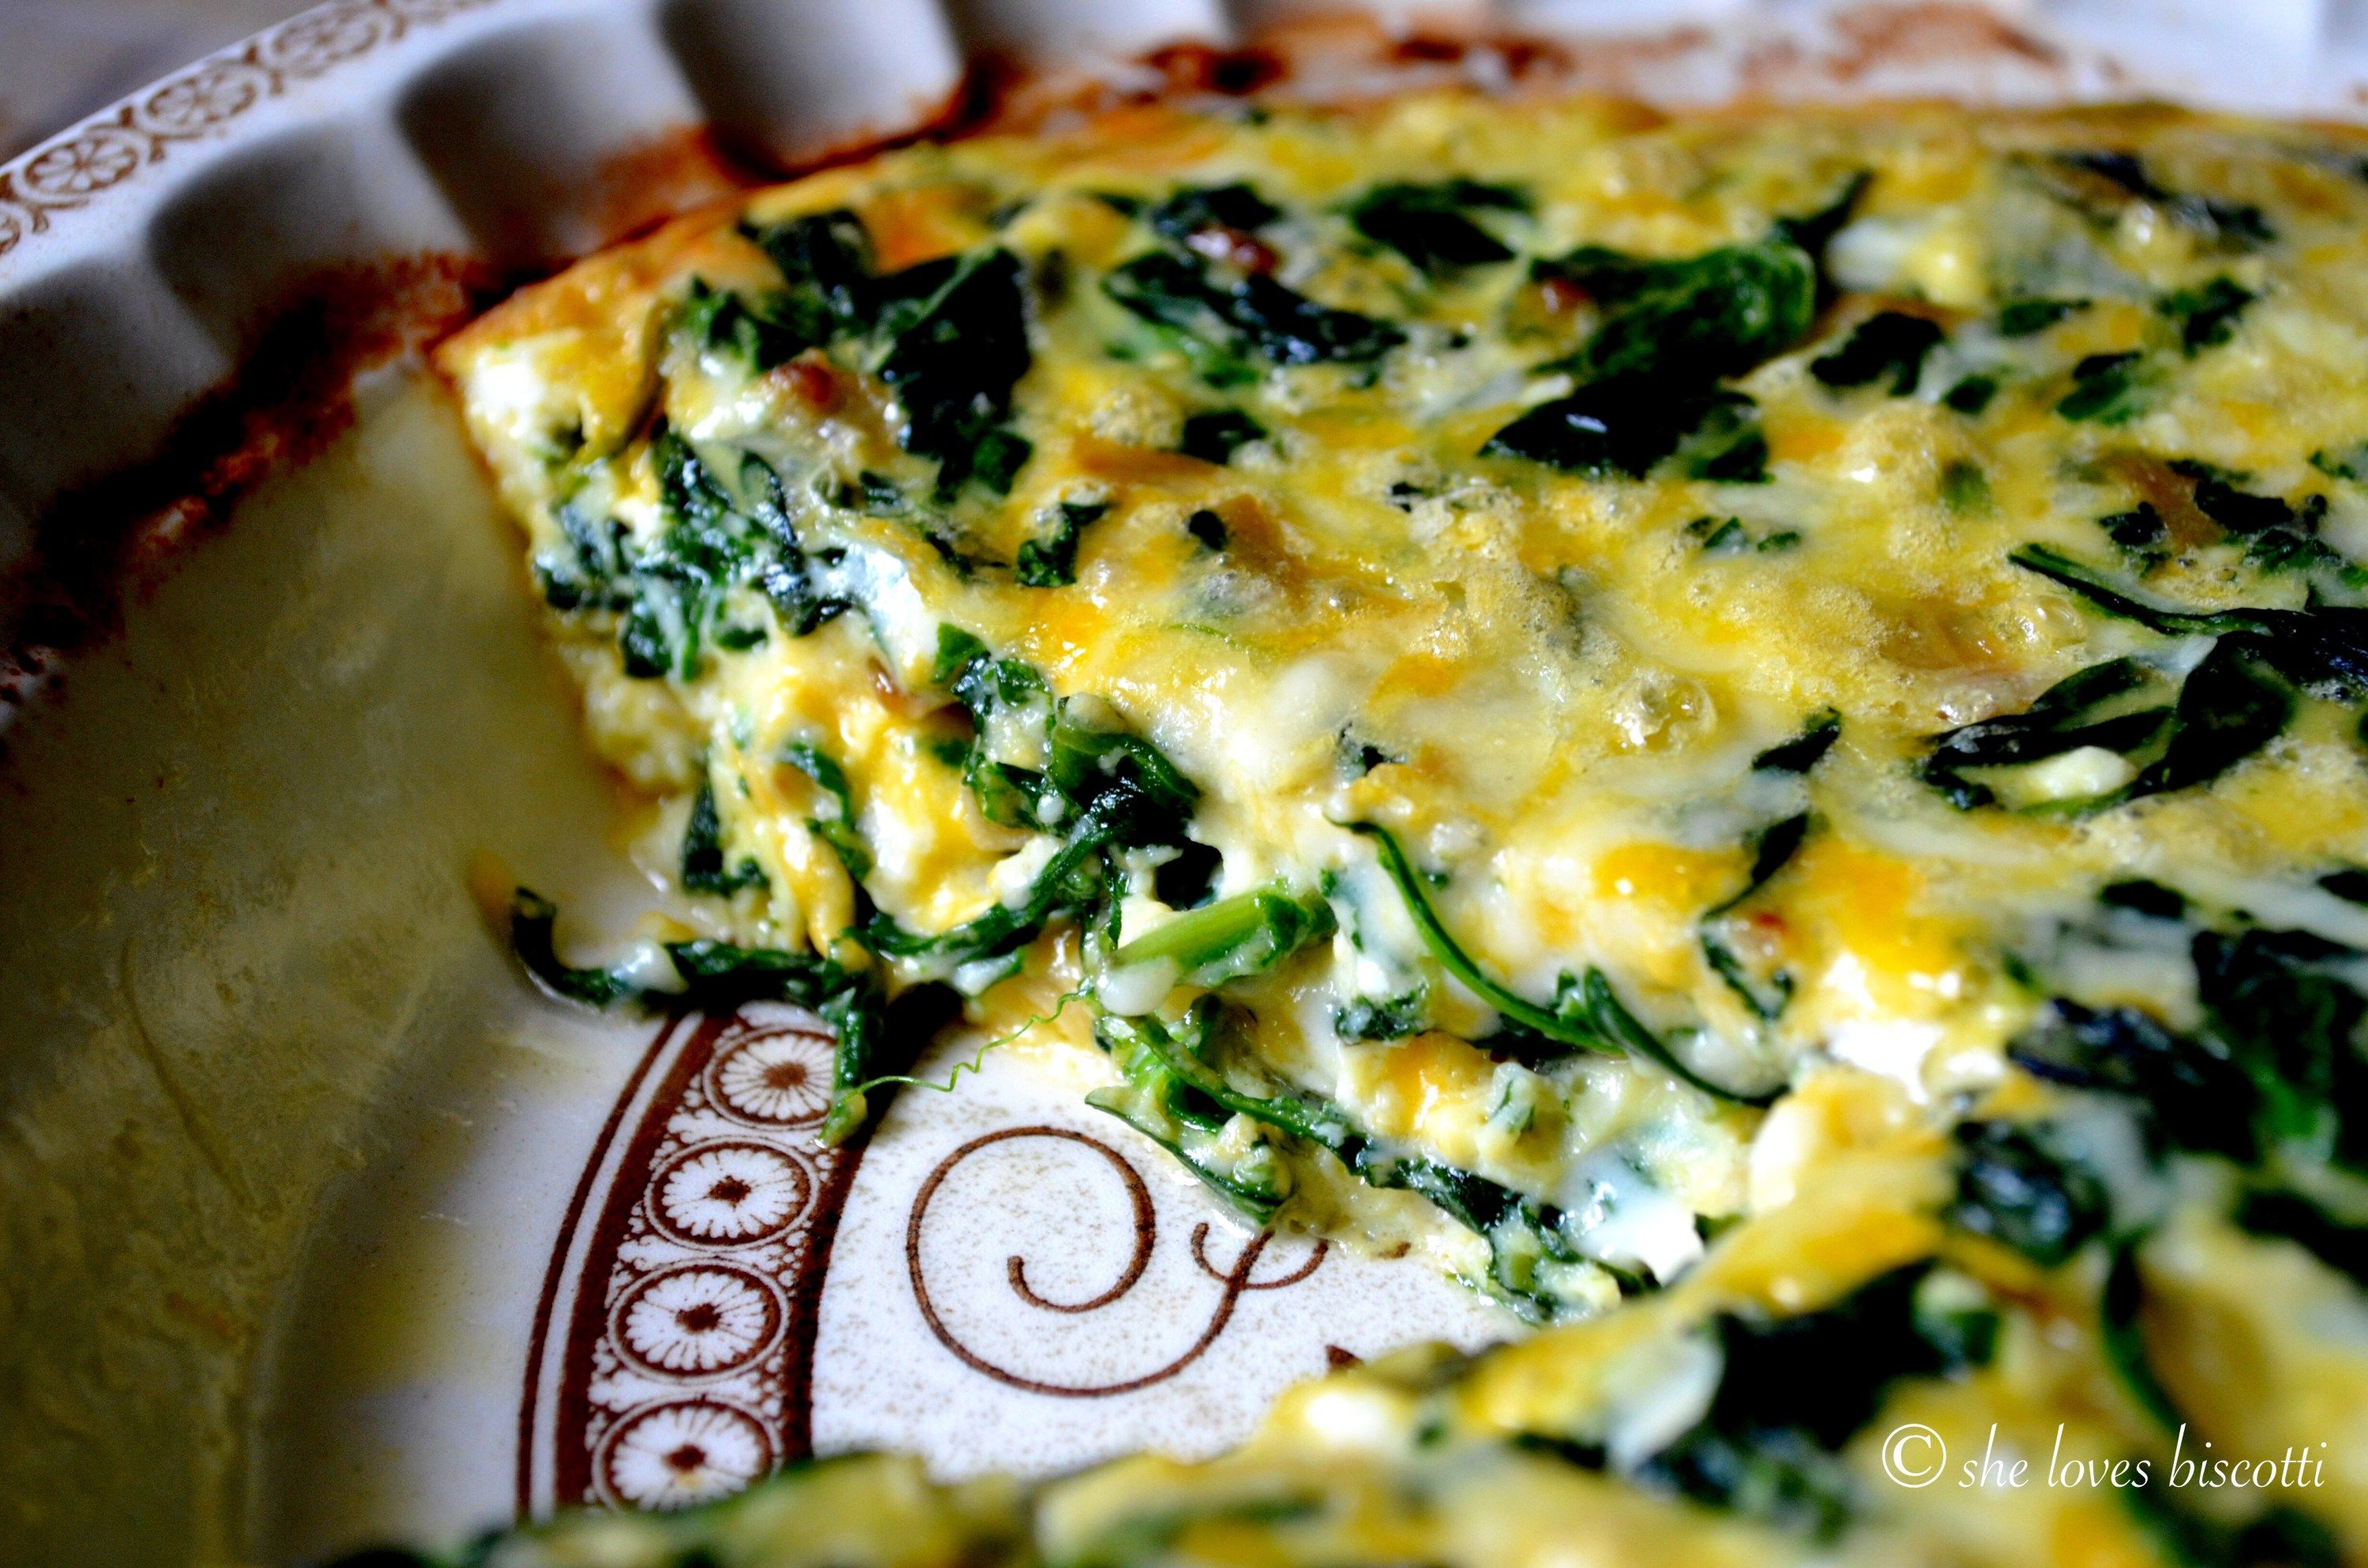 How to make crustless quiche with spinach